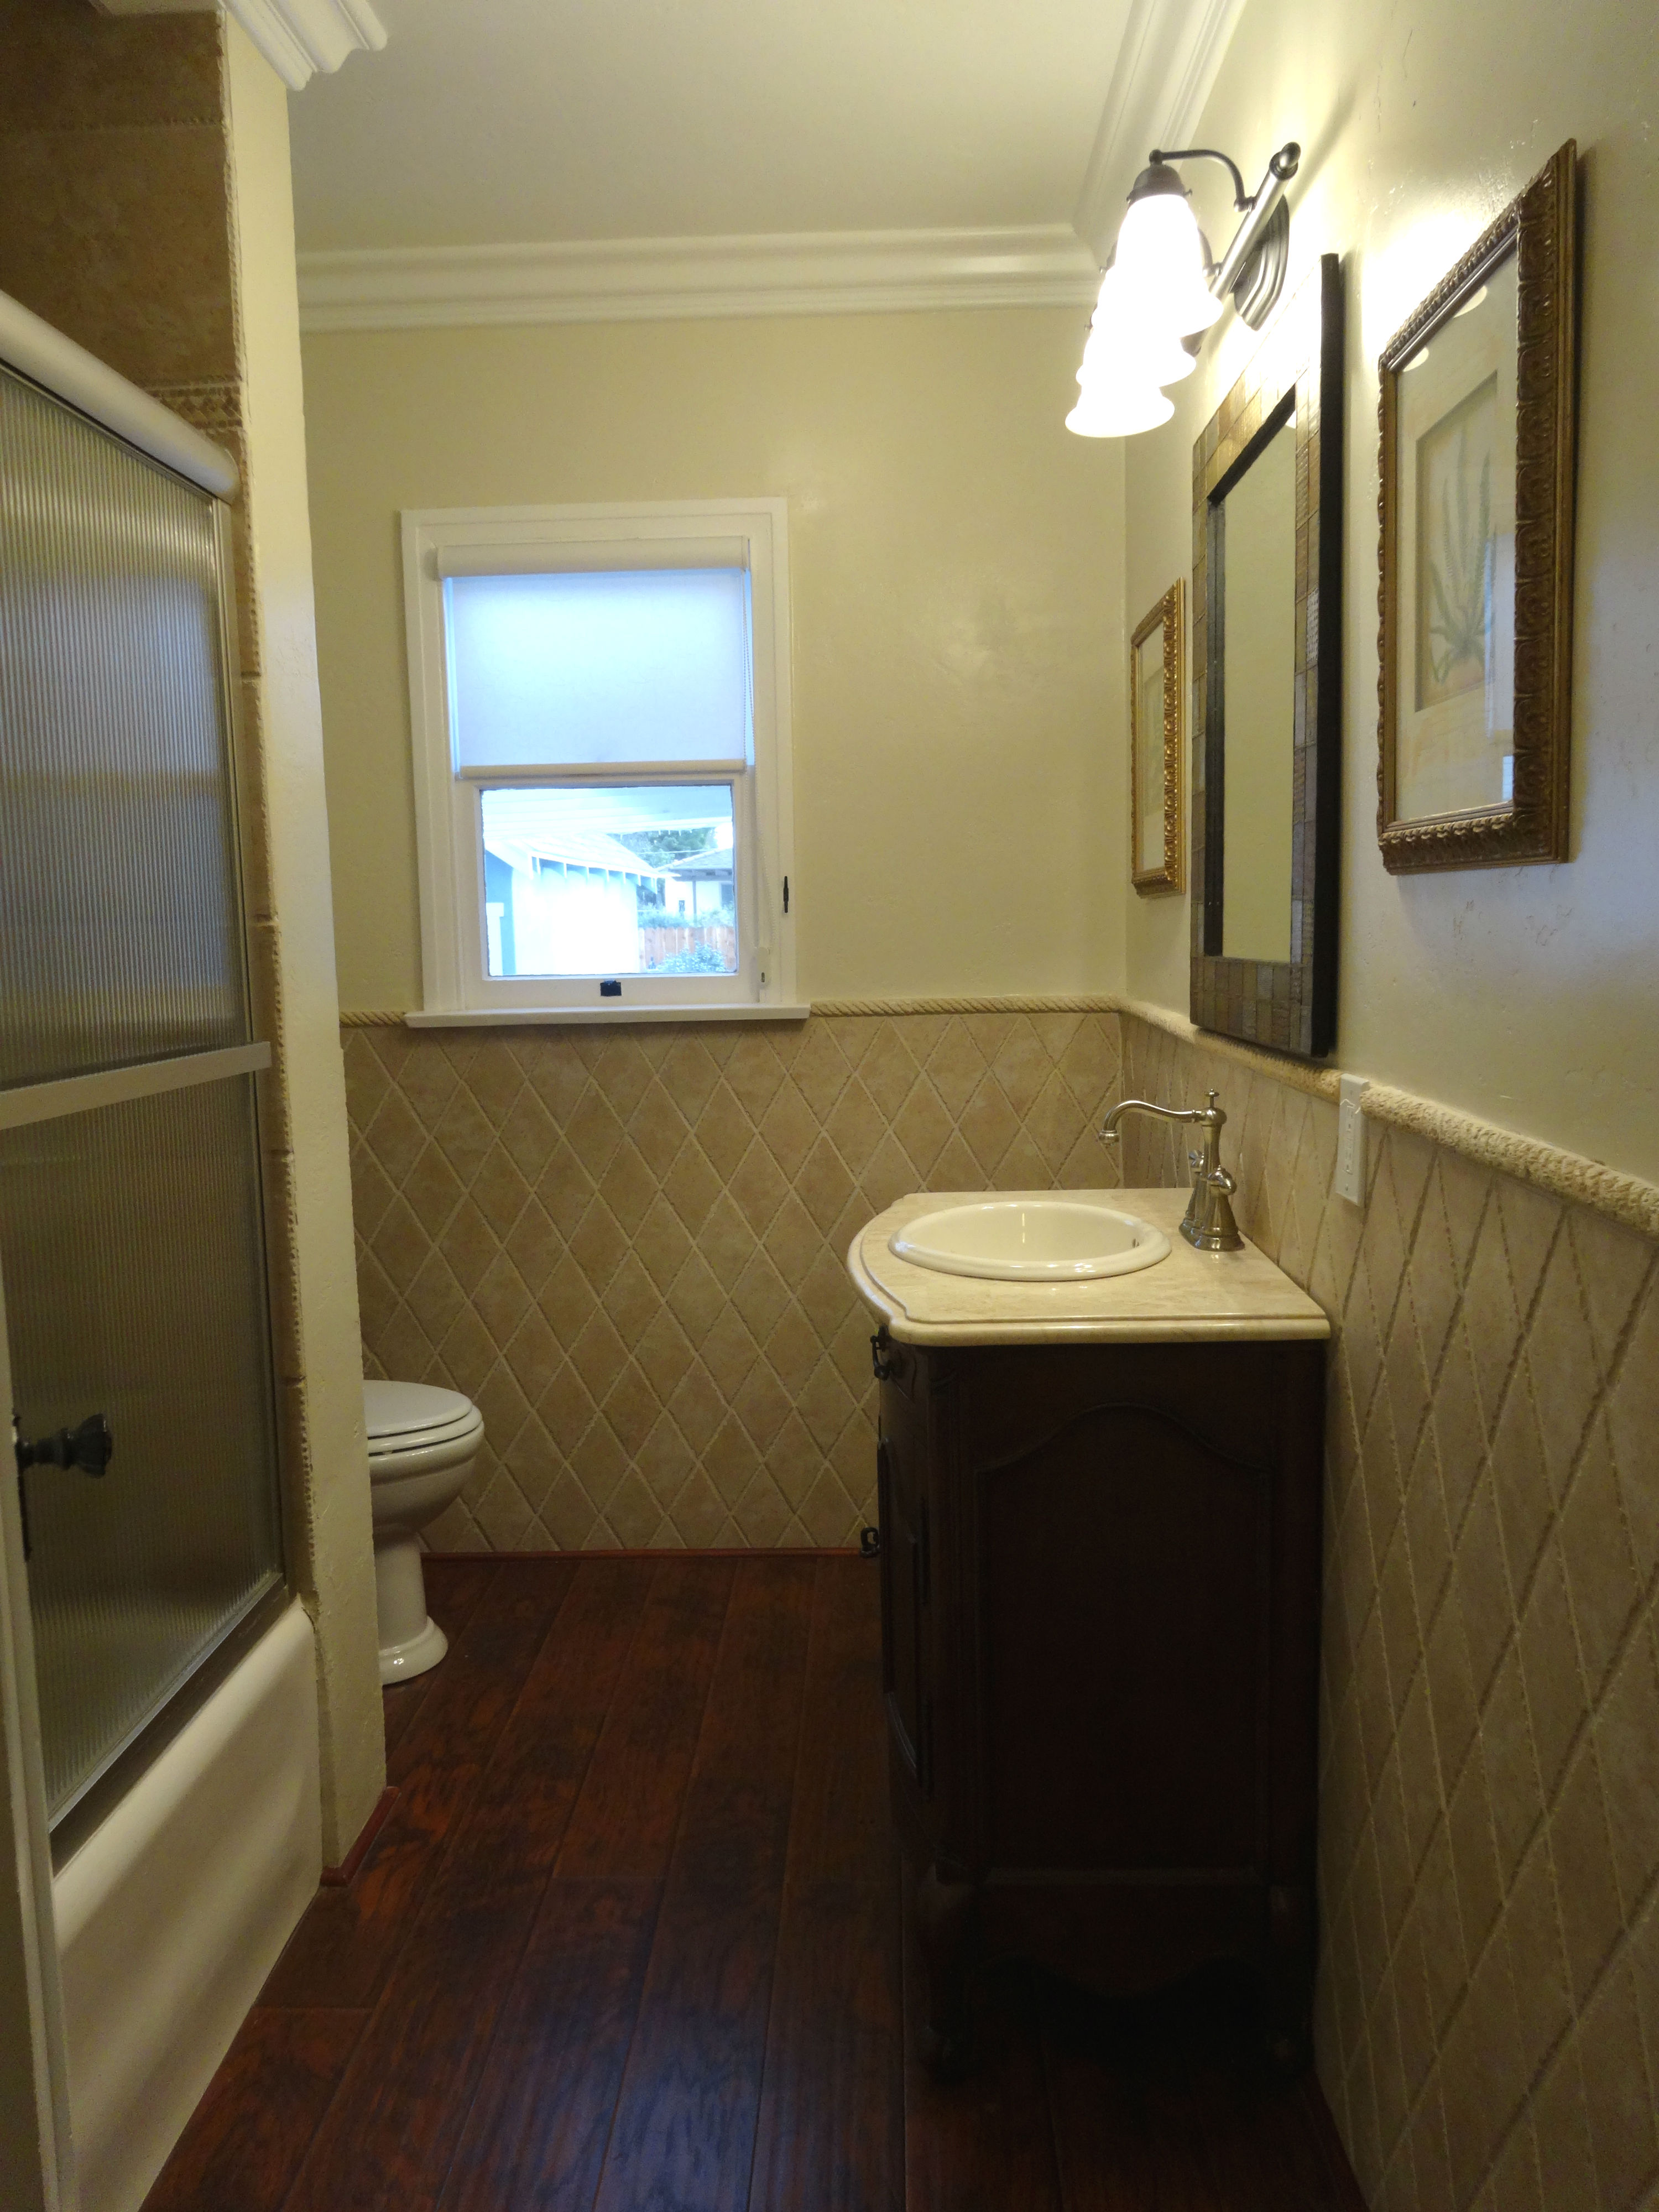 Fancy Alternate view of hallway bathroom including fully tiled shower enclosure with glass doors